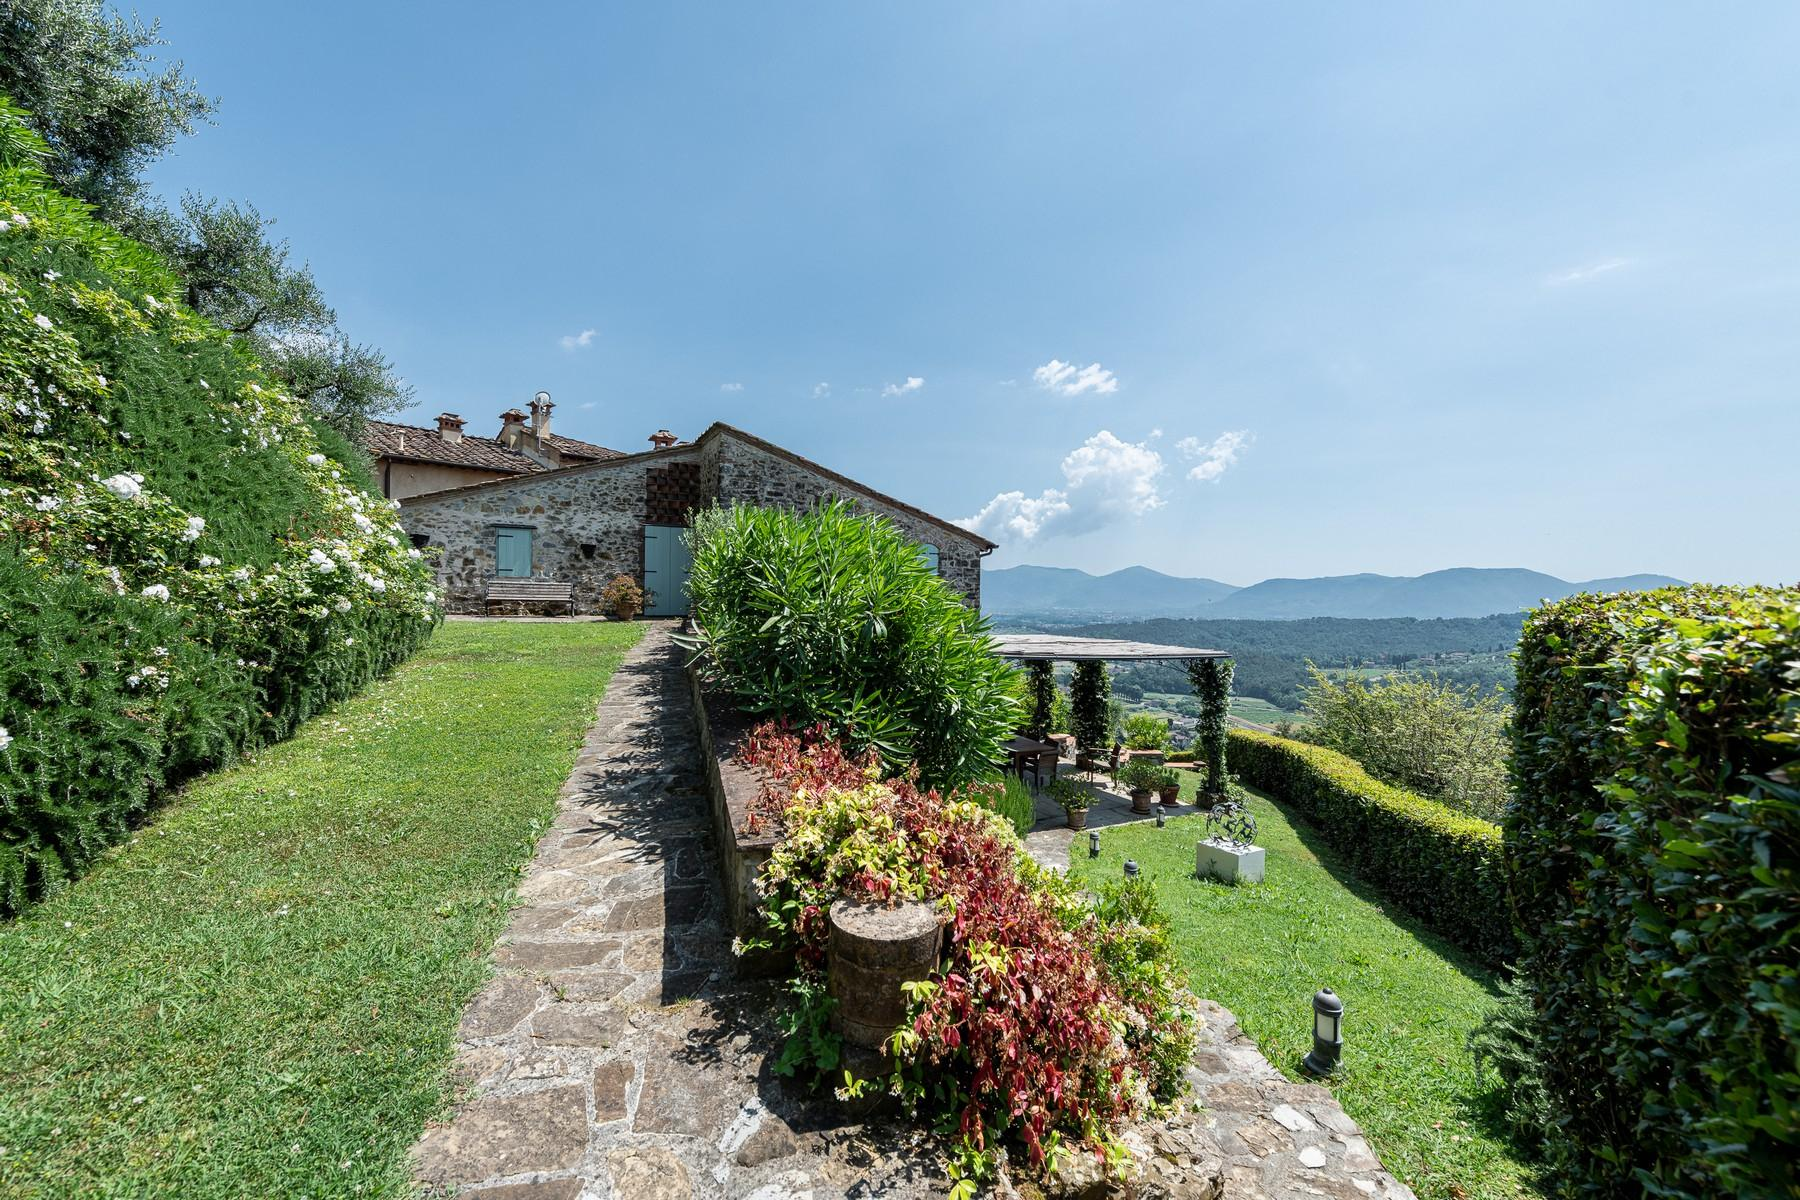 Magical farmhouse with stunning views on the hills of Lucca - 30